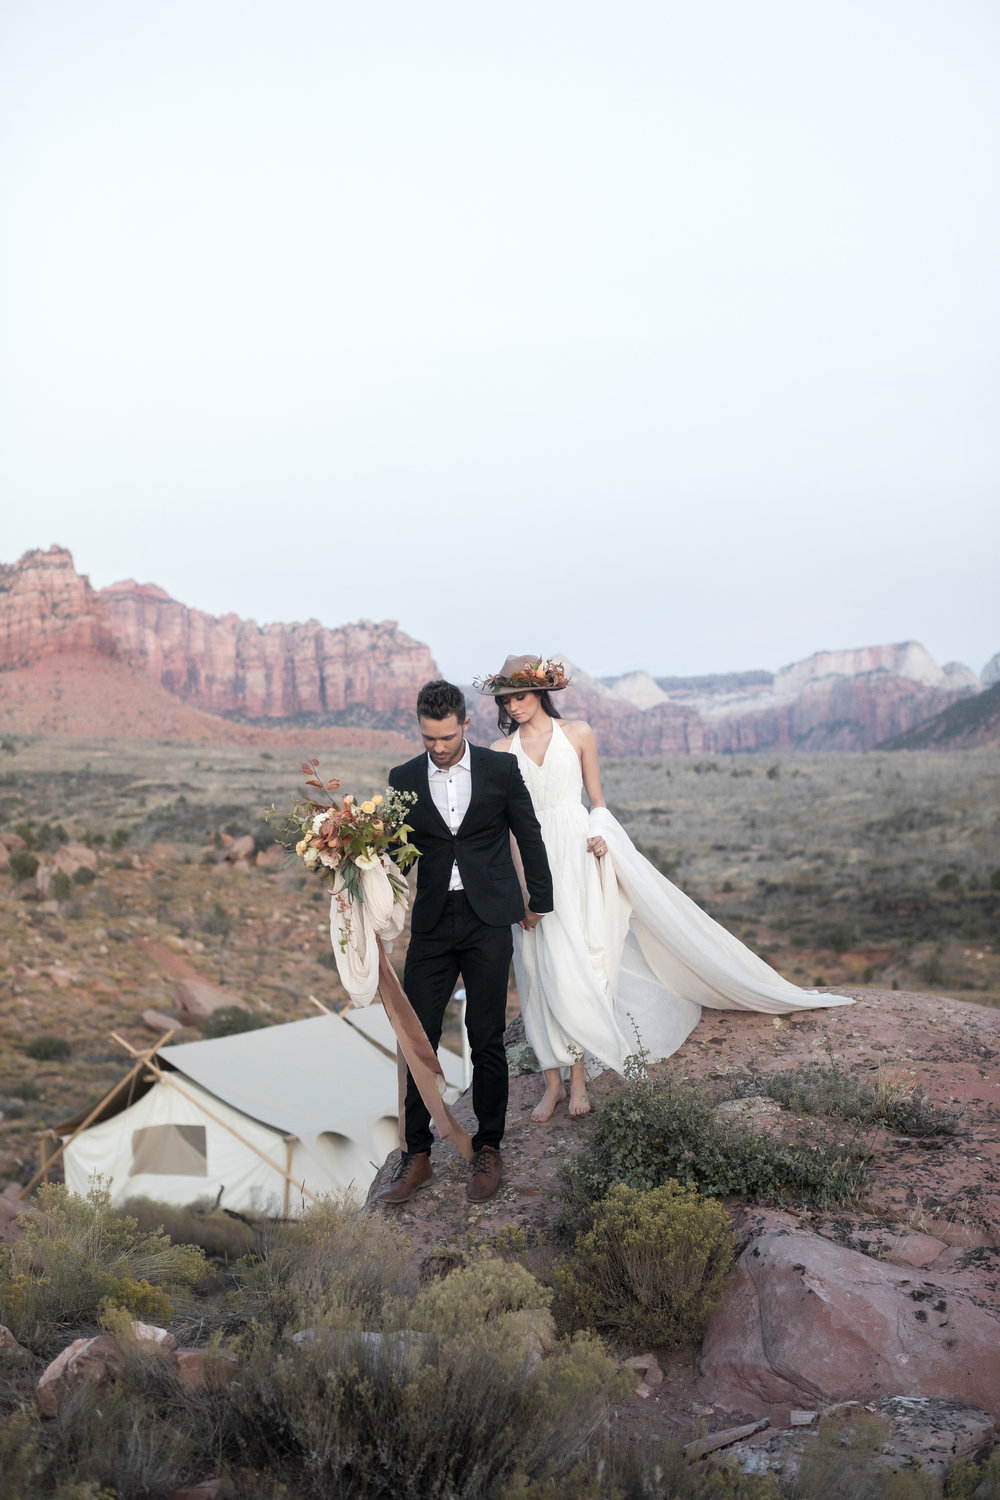 Glamping-Inspired Elopement